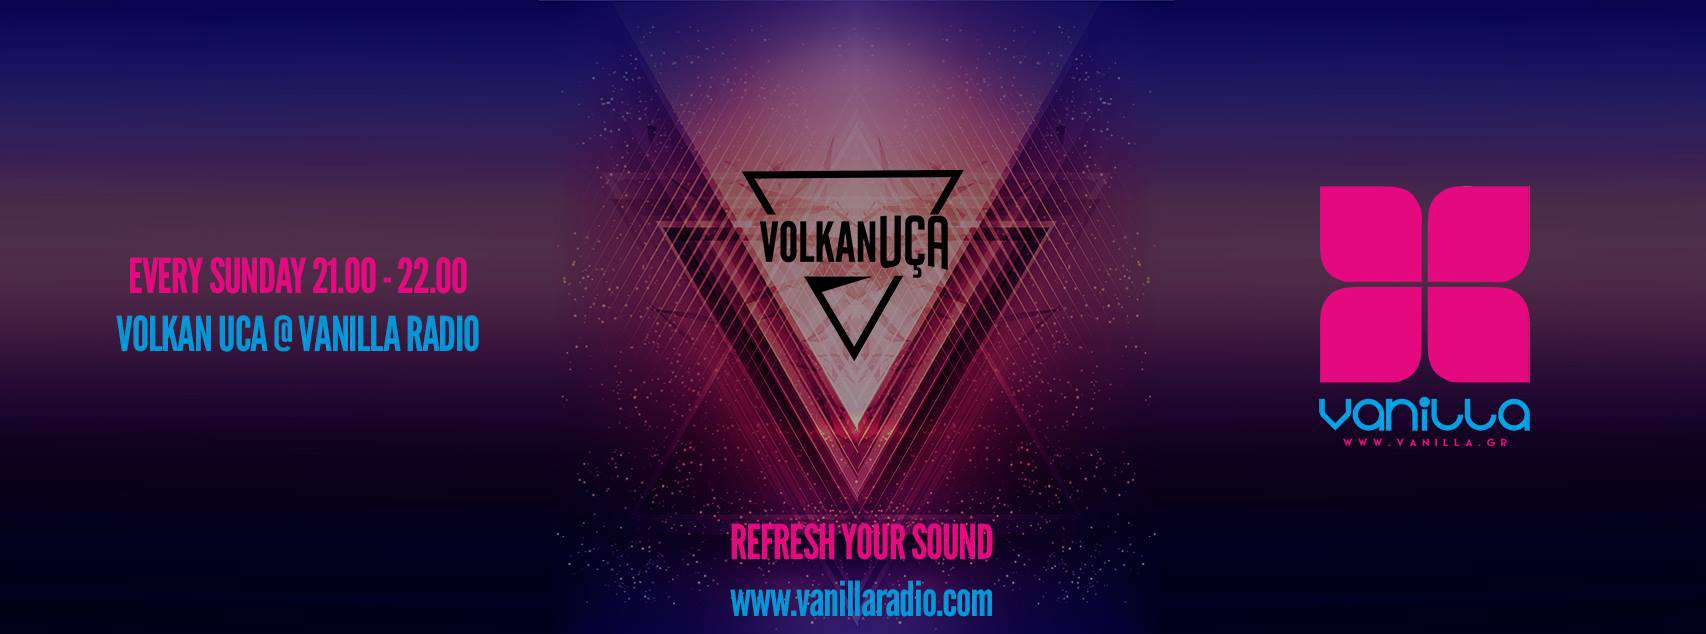 VolKan Uca, the successful Dj, and producer, will be on air Every Sunday for 21:00 - 22:00 ( GMT+2 ) for one hour with a special mix-set for all Vanilla Radio's fans around the world.